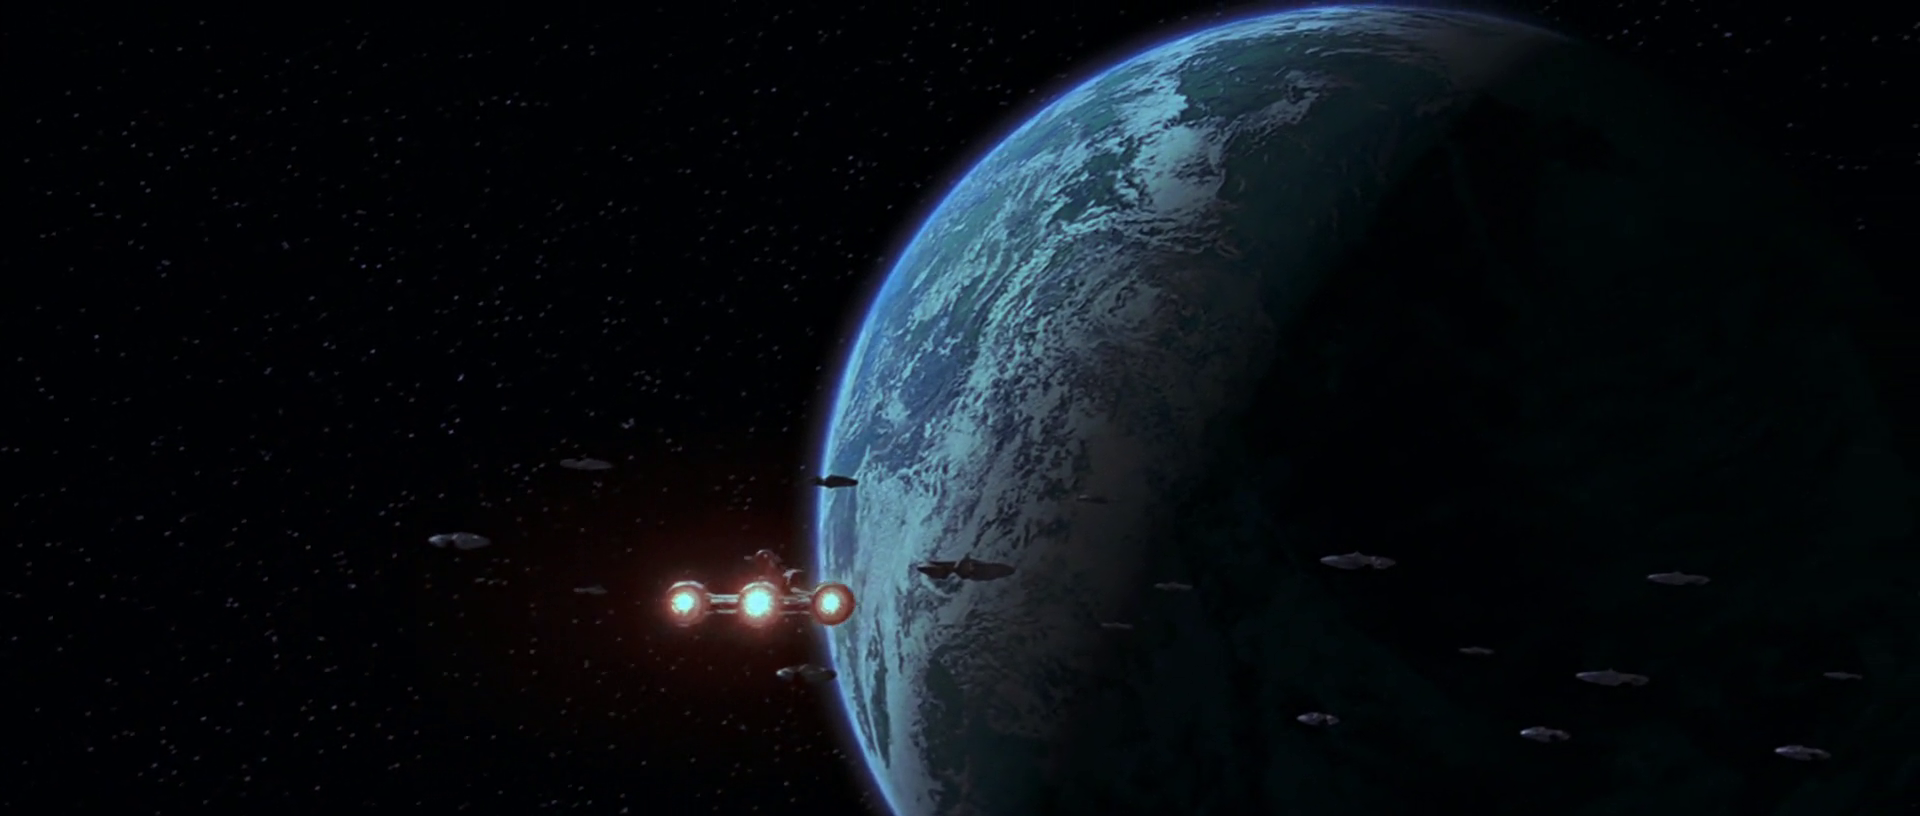 The Planet of Naboo